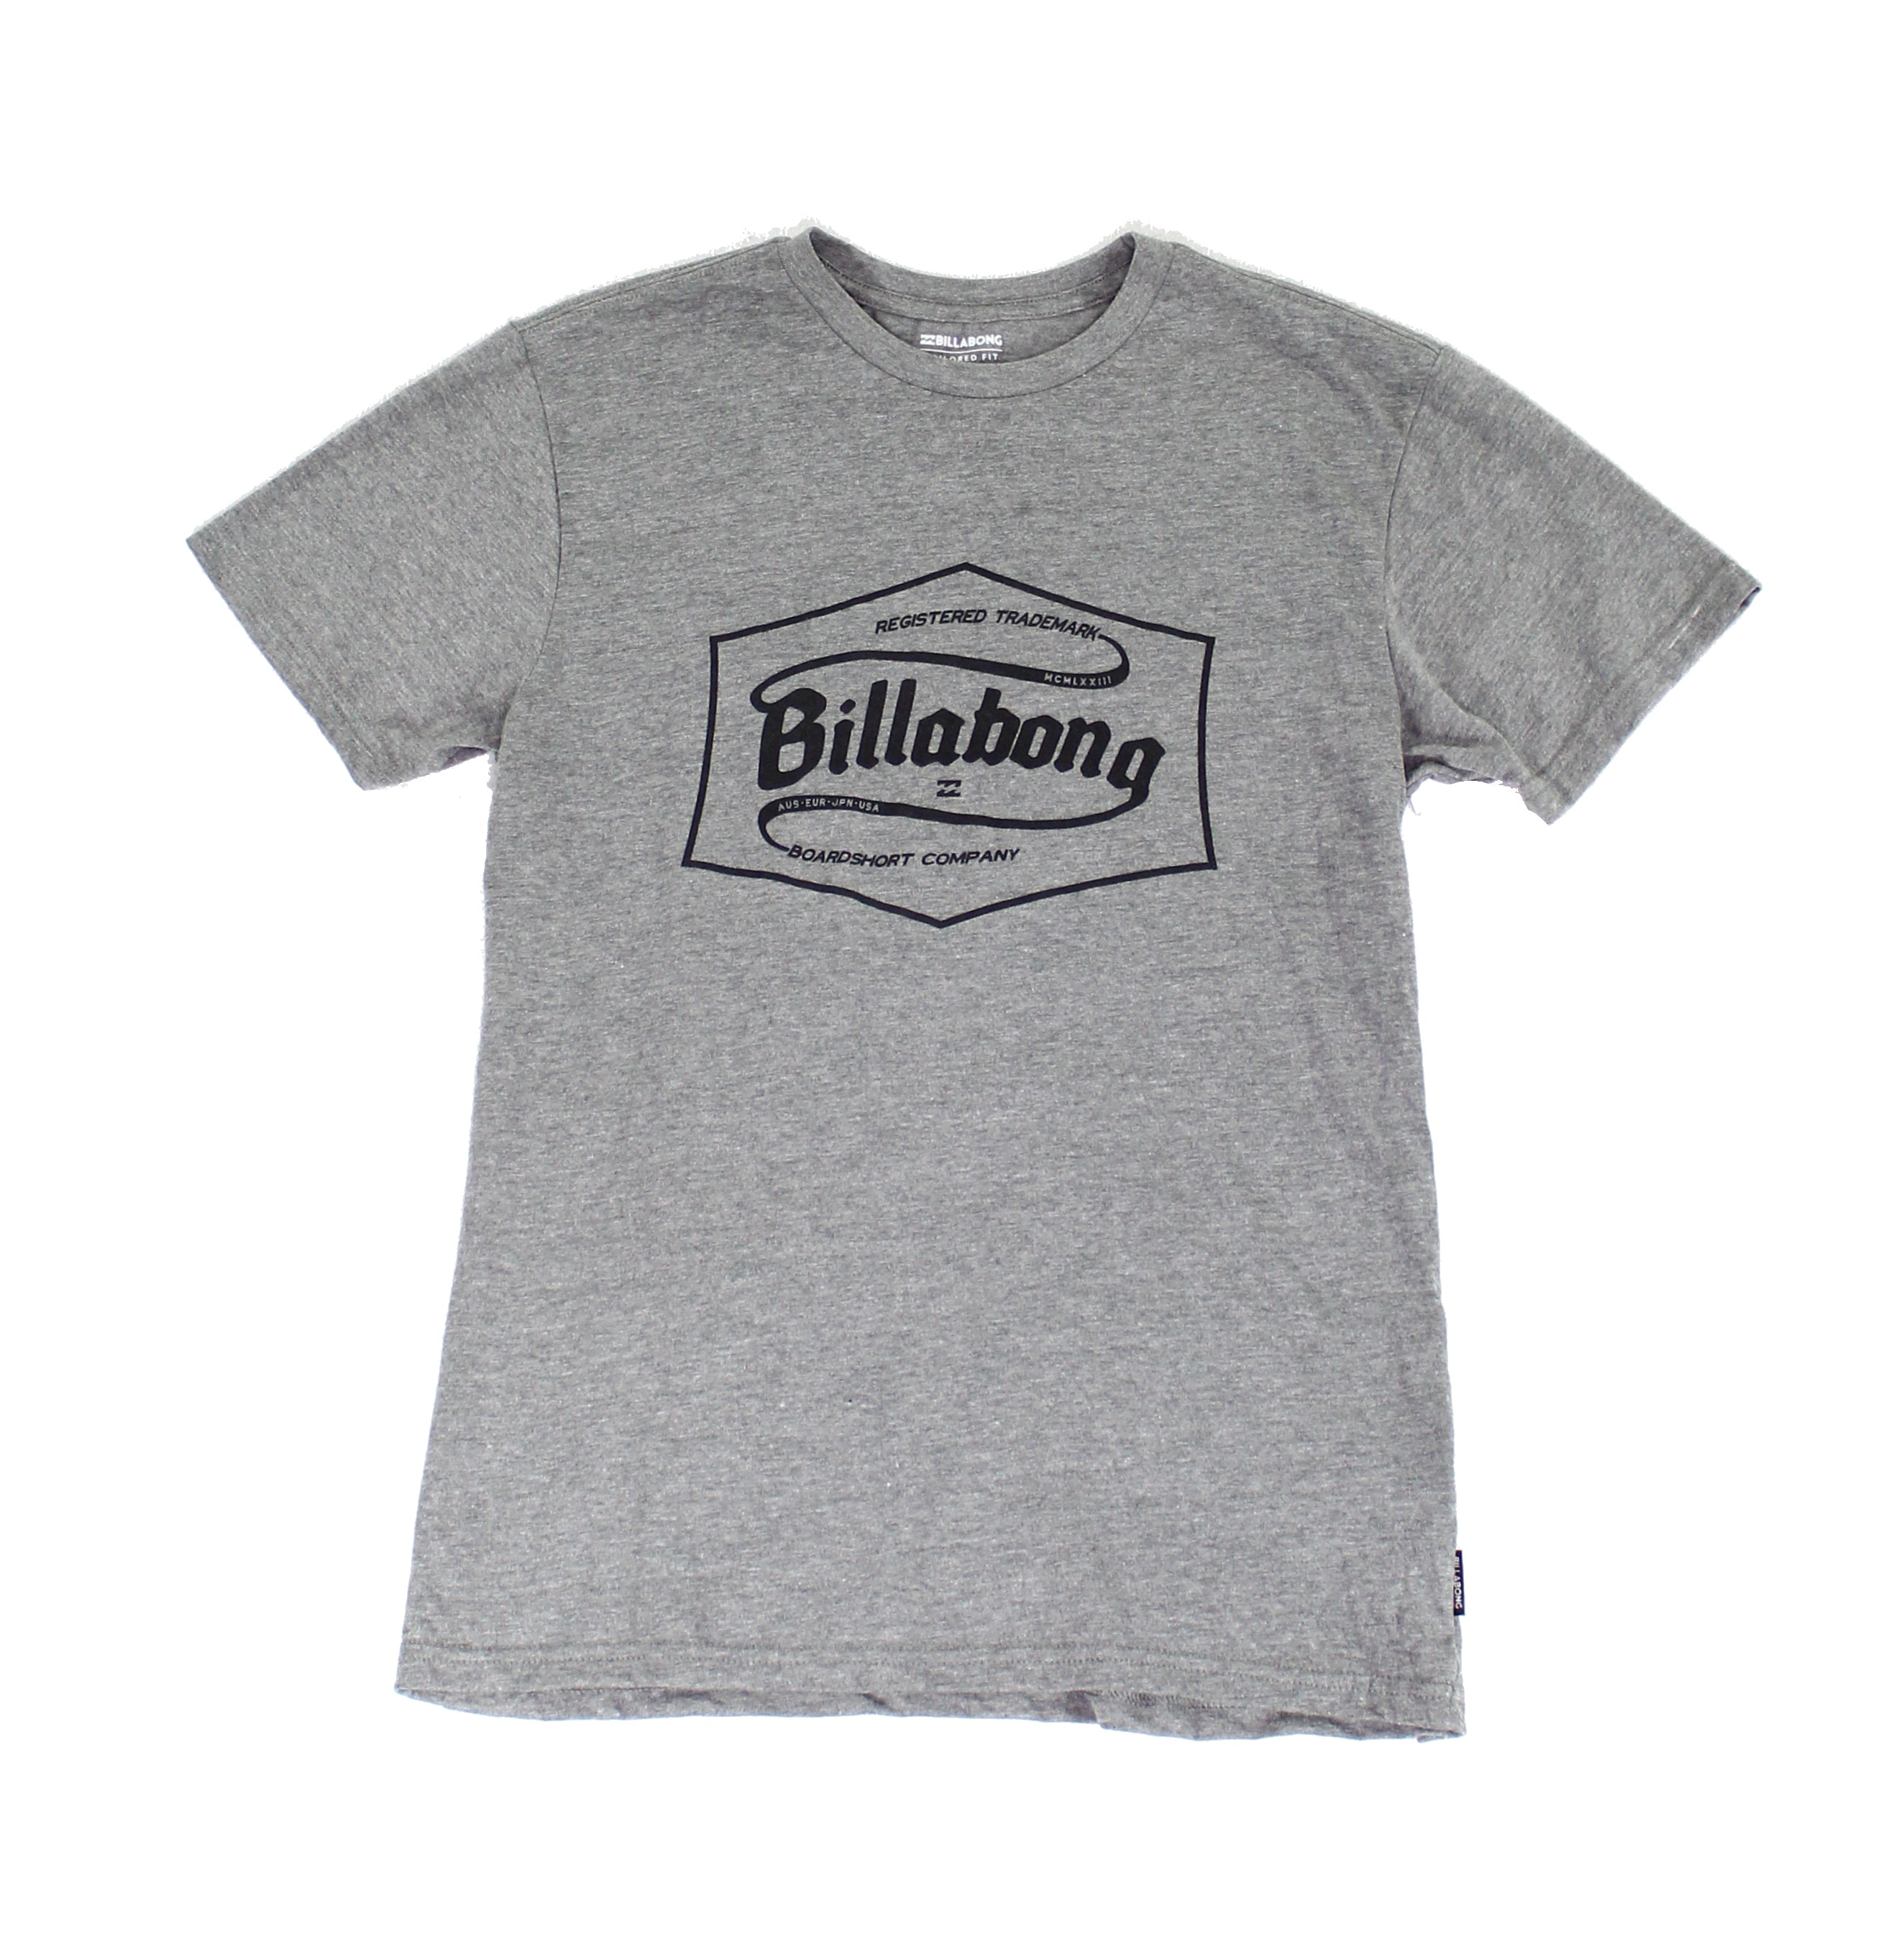 Billabong-NEW-Gray-Mens-Size-Small-S-Tailored-Fit-Graphic-Tee-T-Shirt-24-166